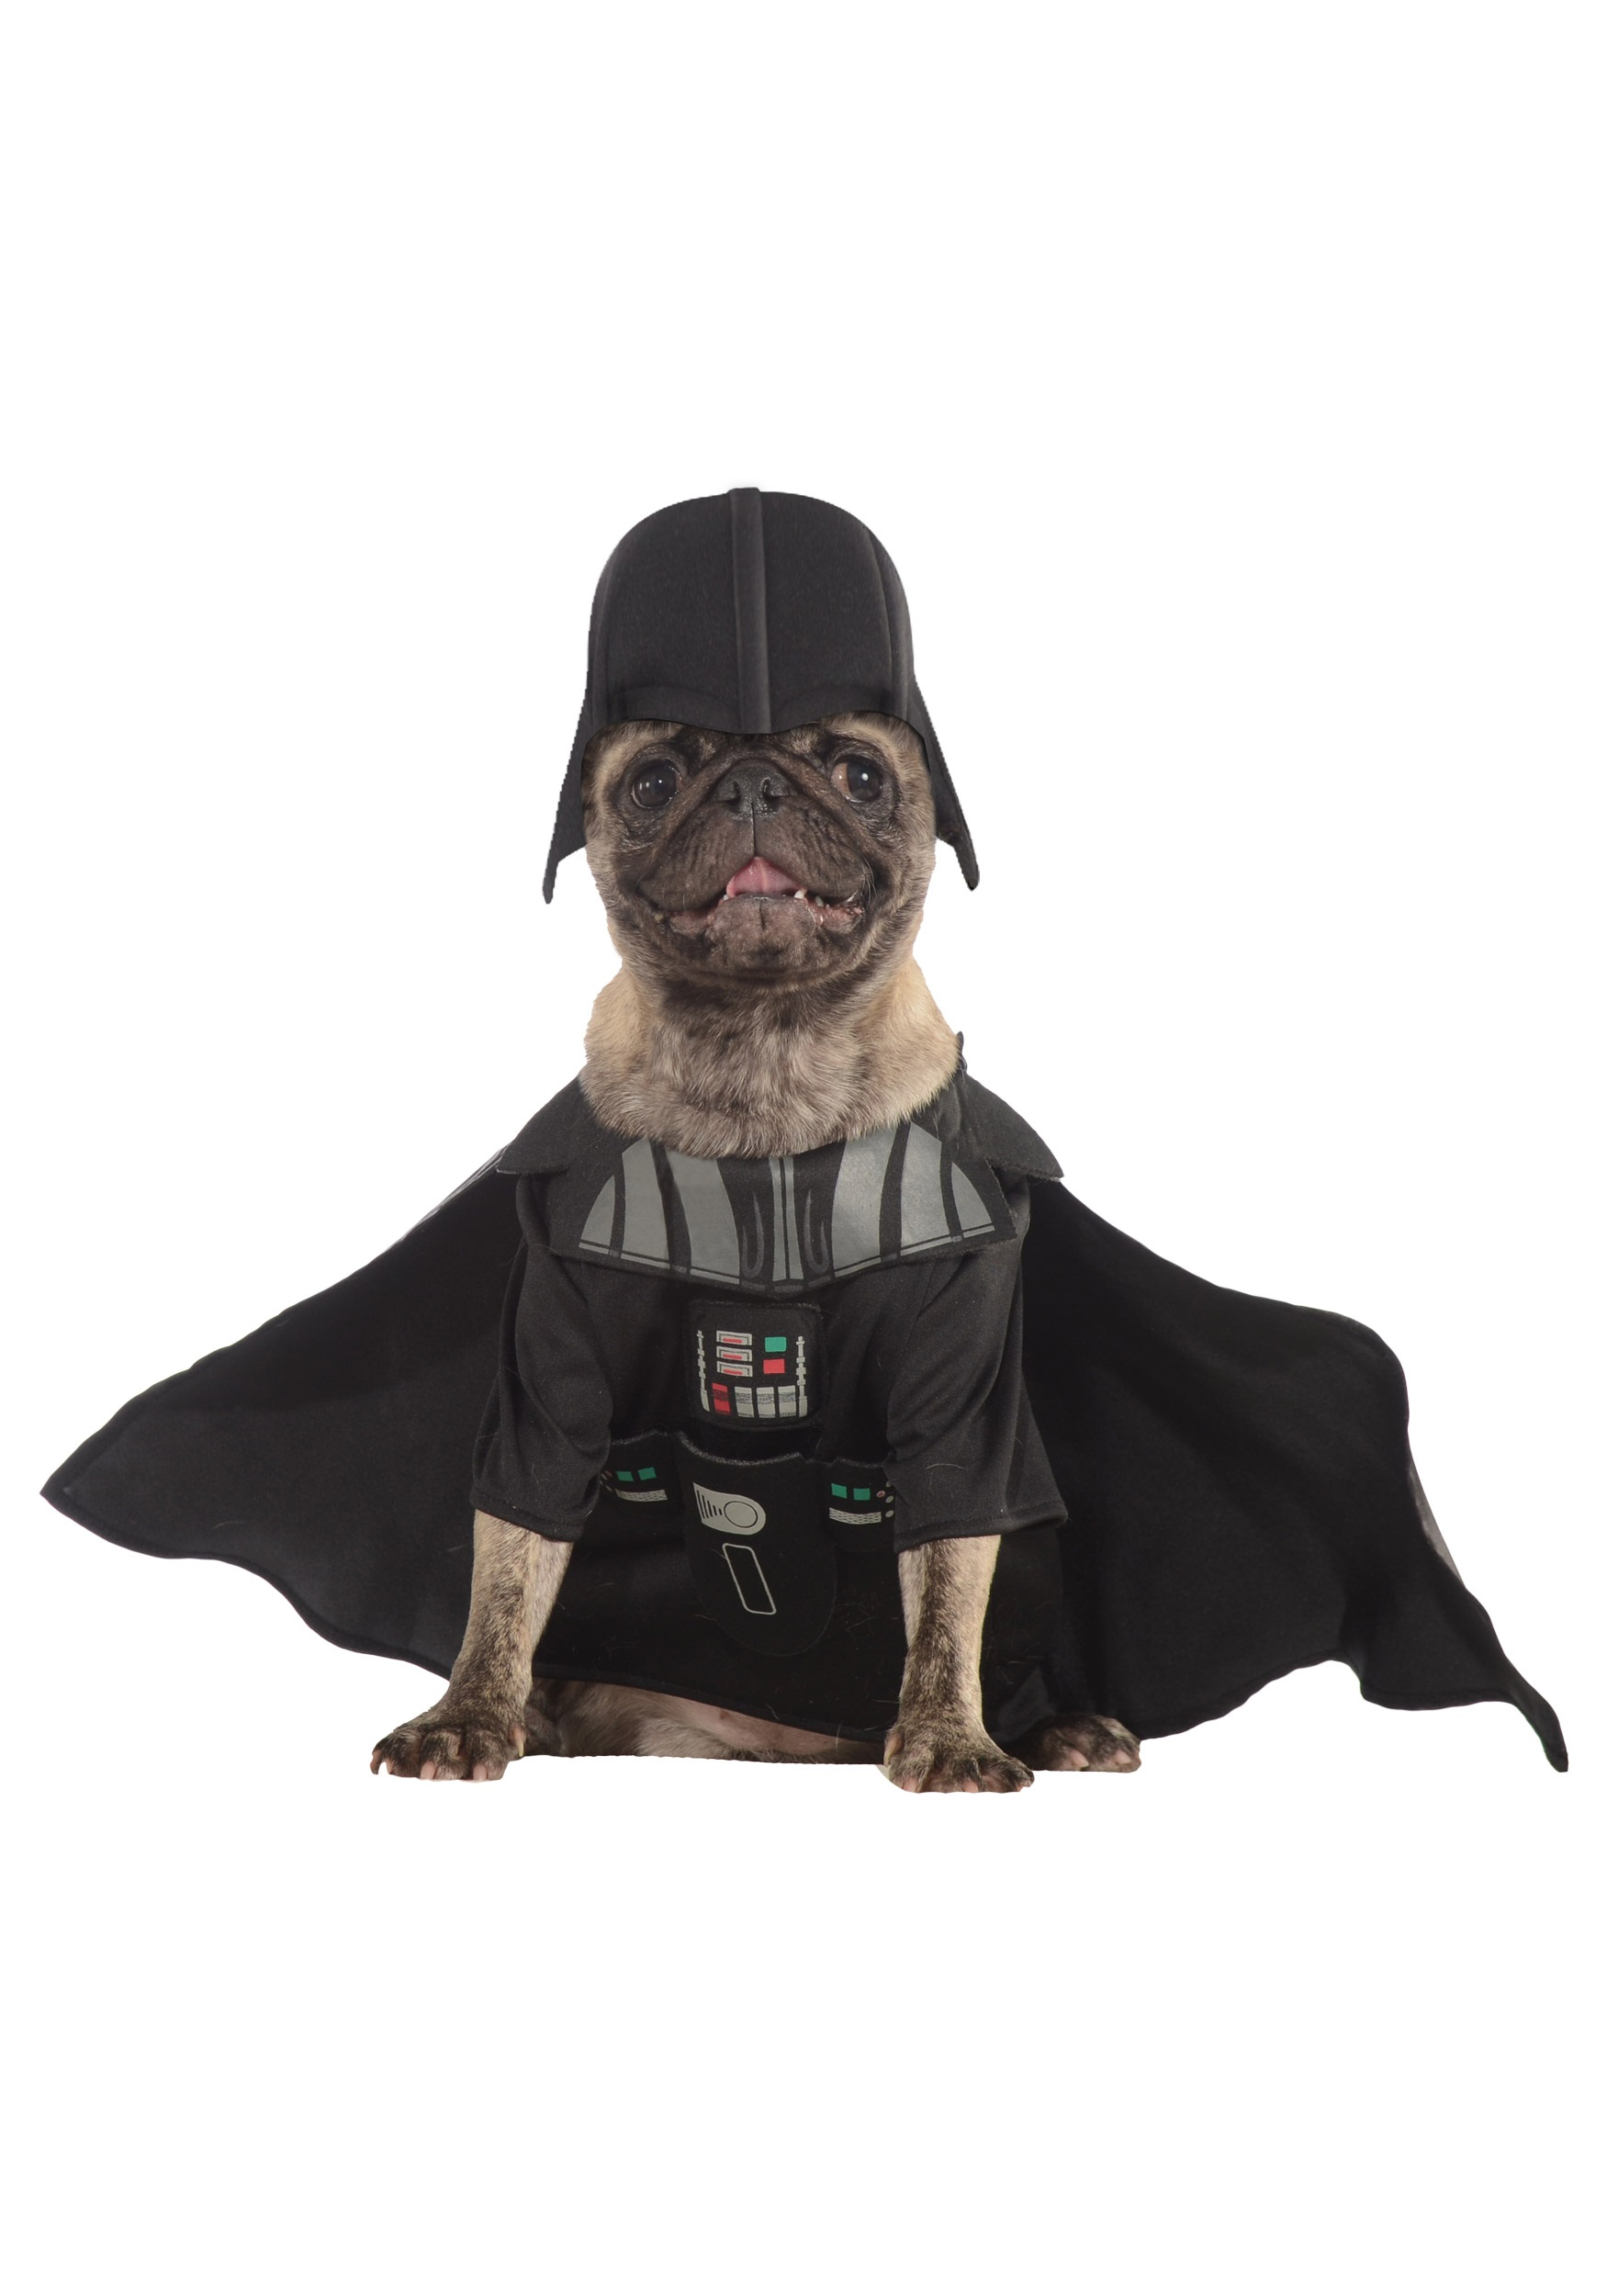 Pet costumes cat dog halloween costumes halloweencostumes darth vader pet costume solutioingenieria Images